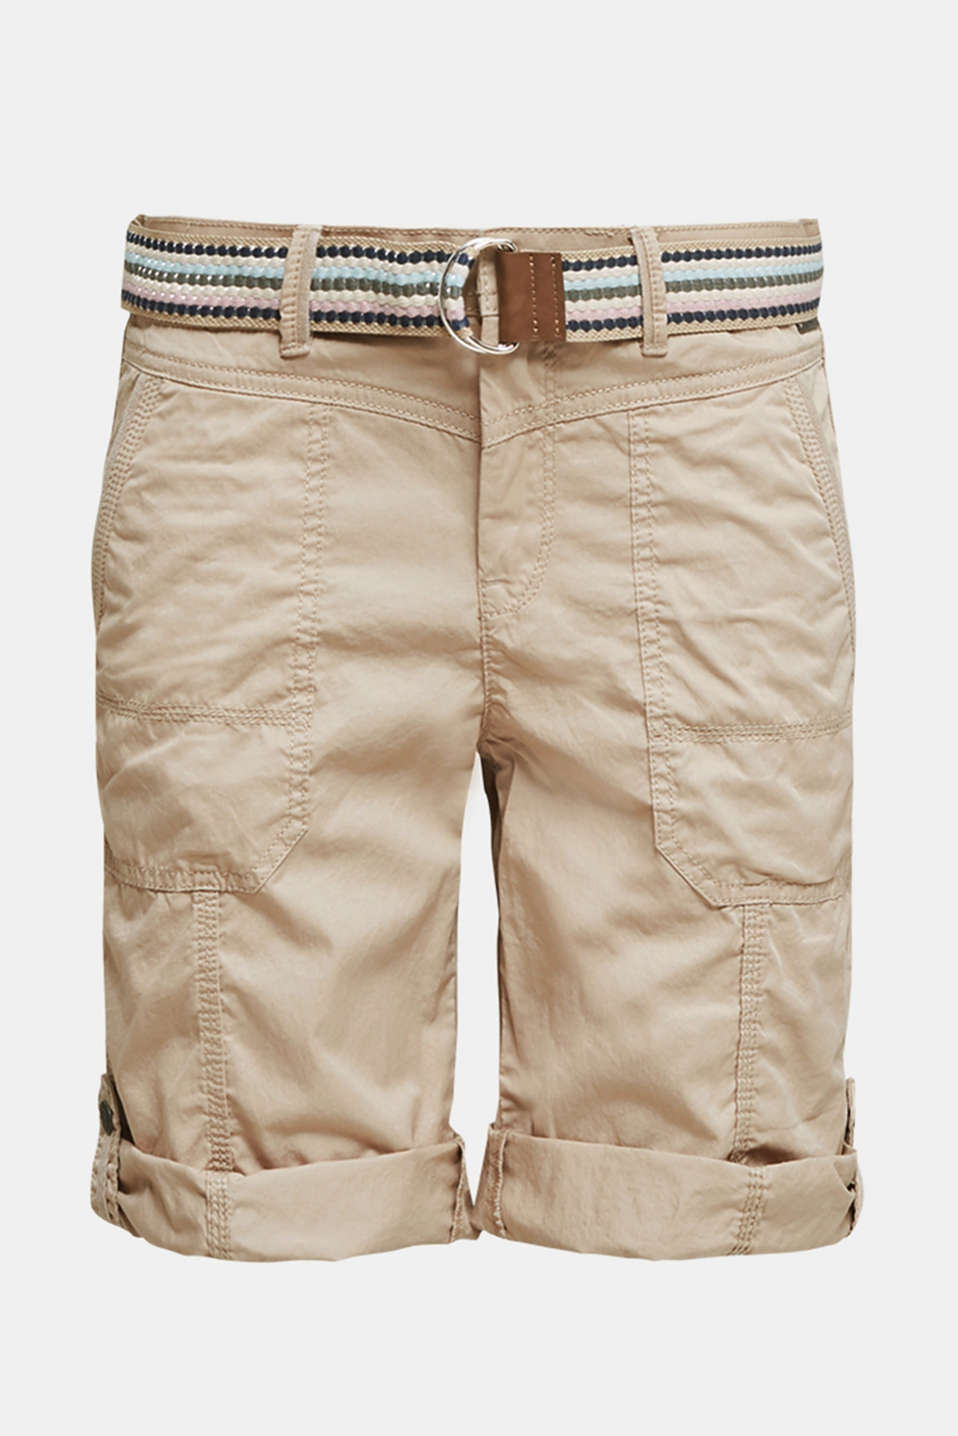 PLAY cotton shorts, BEIGE, detail image number 7